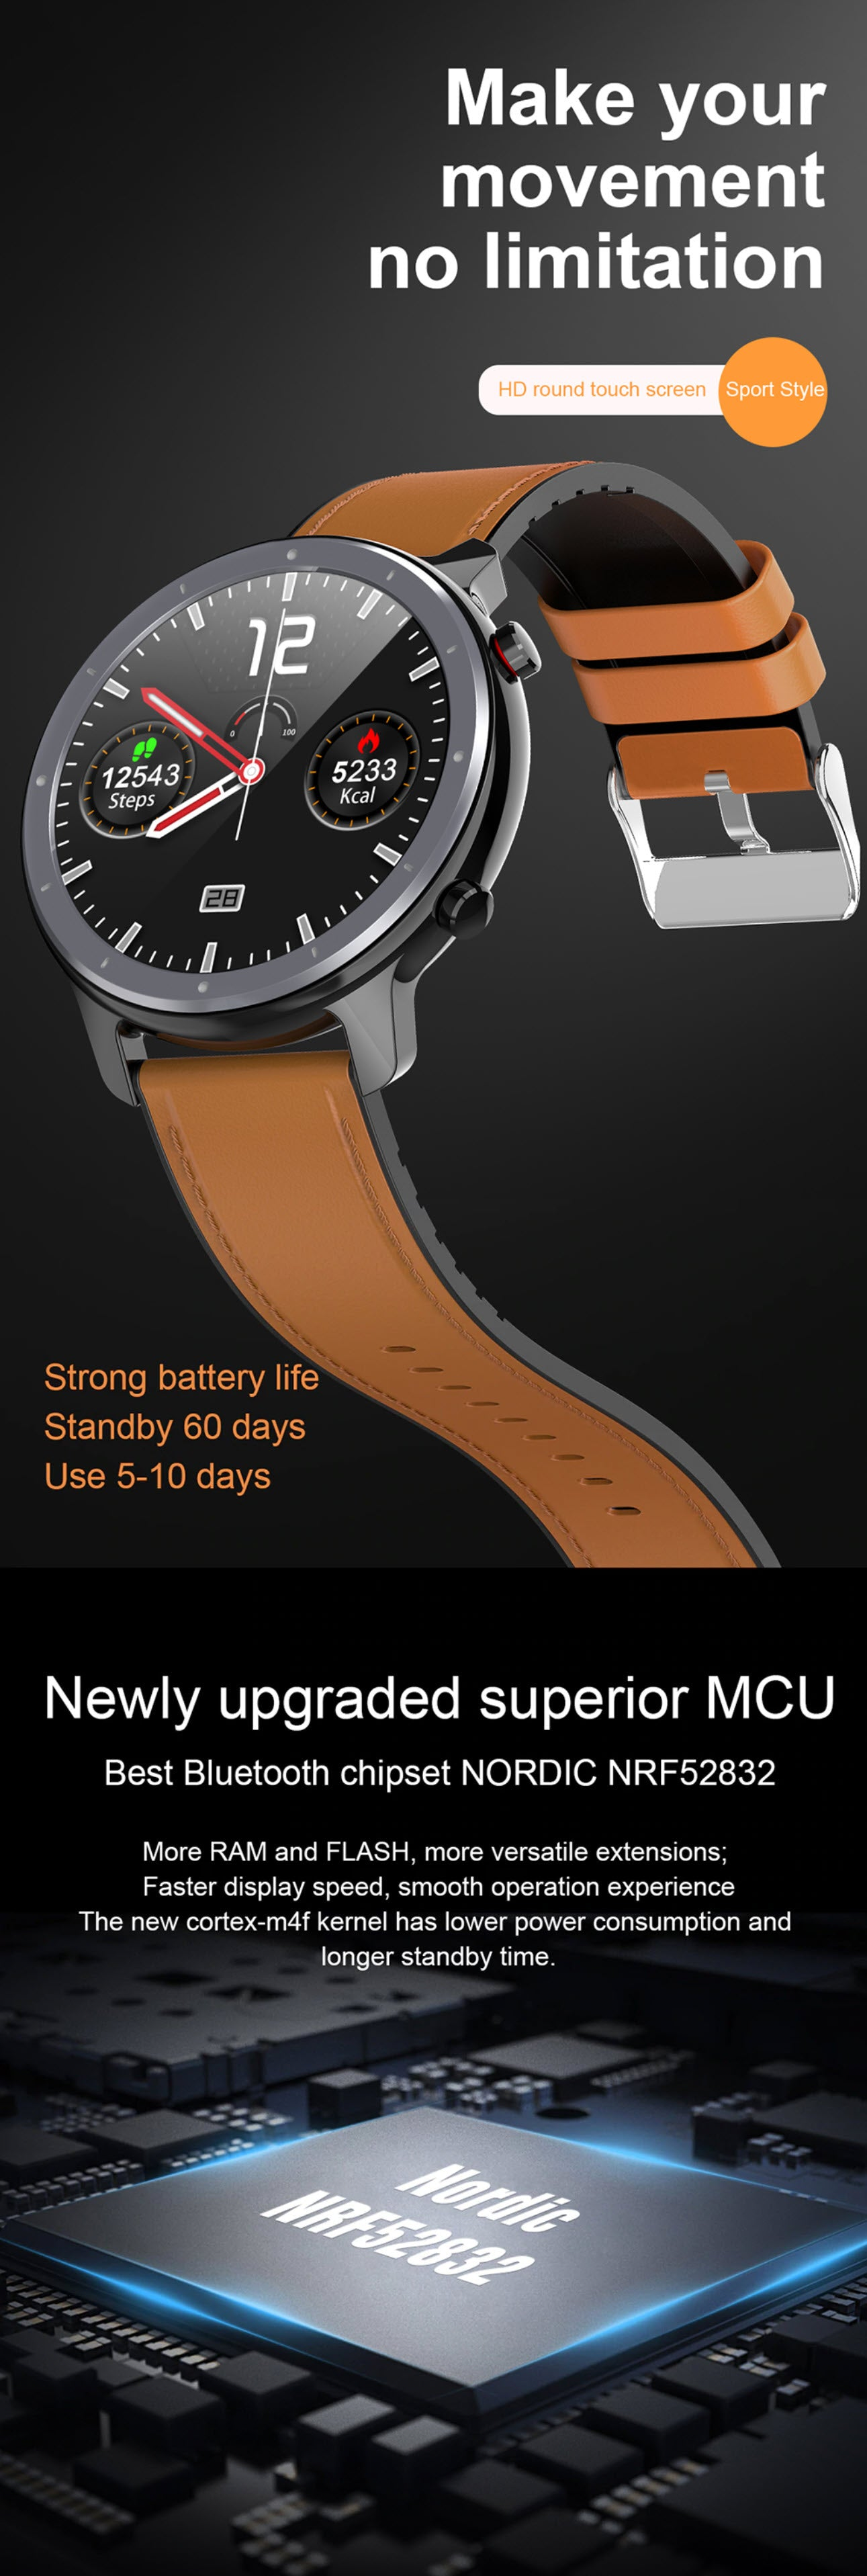 LEMFO L11 Smartwatch and Fitness Tracker Make Your Movement No Limitation New Upgraded Superior MCU